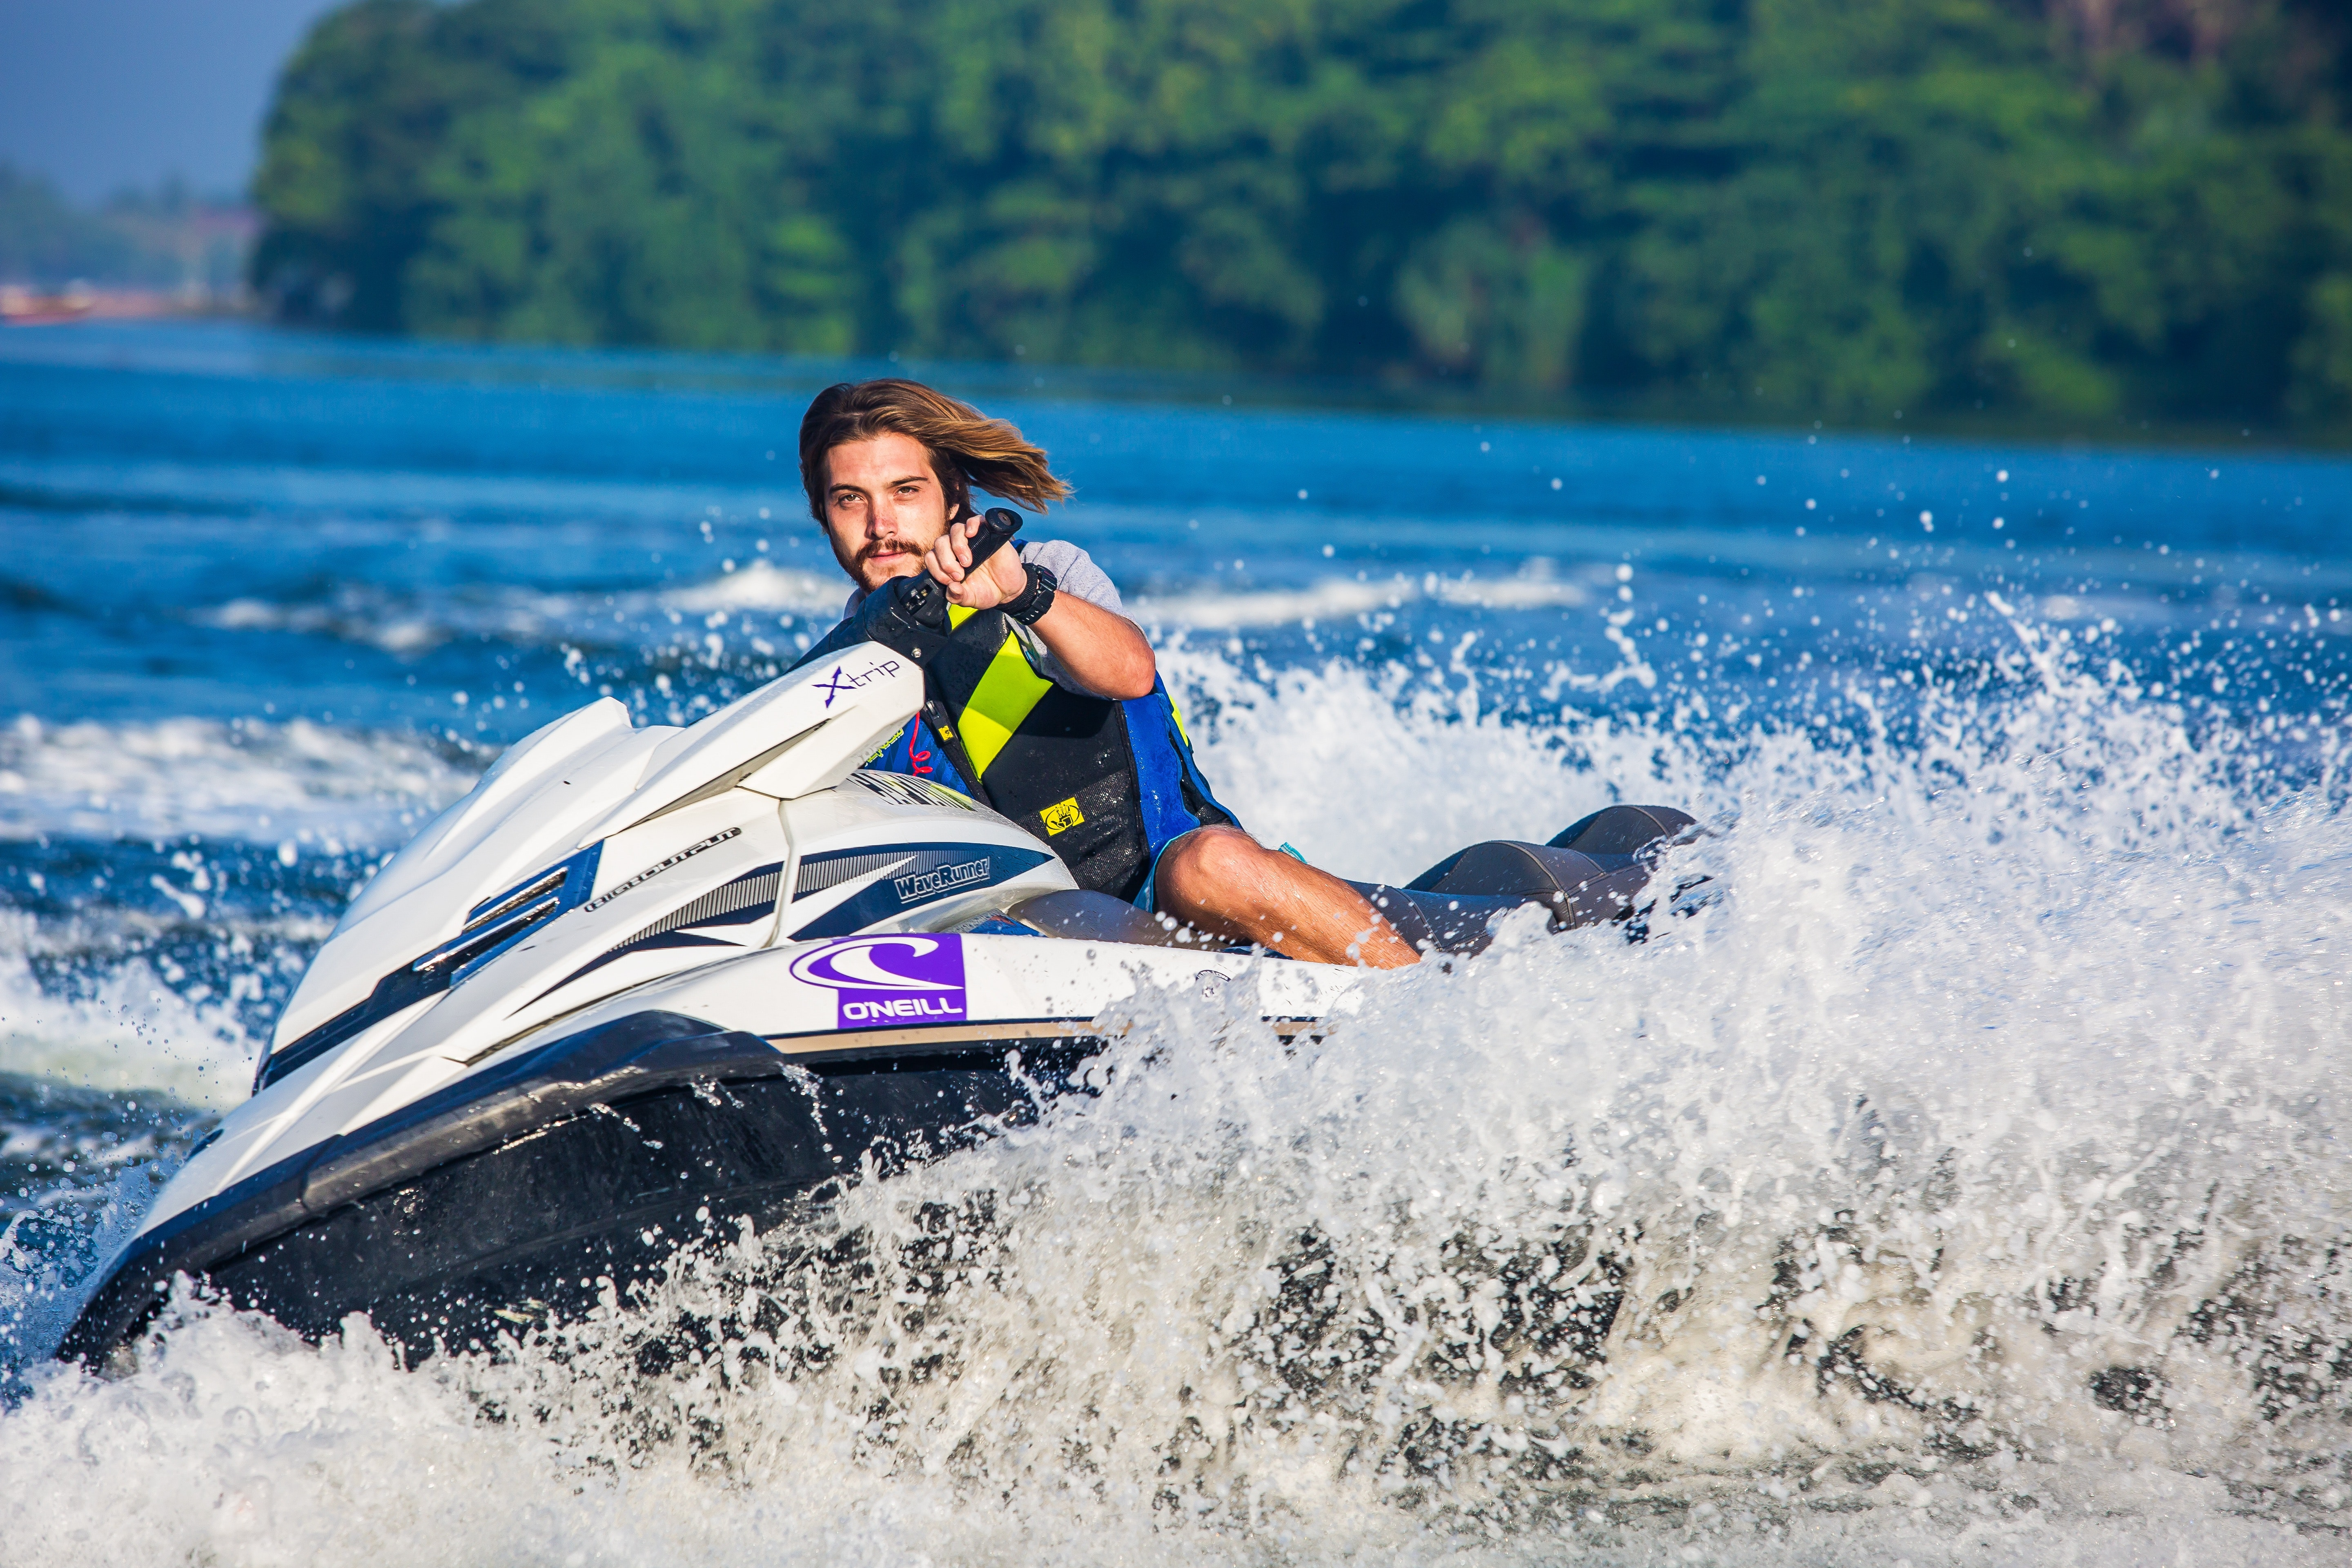 Man in Safety Vest Riding a Personal Watercraft during Daytime, Activity, Hobby, Jet ski, Man, HQ Photo